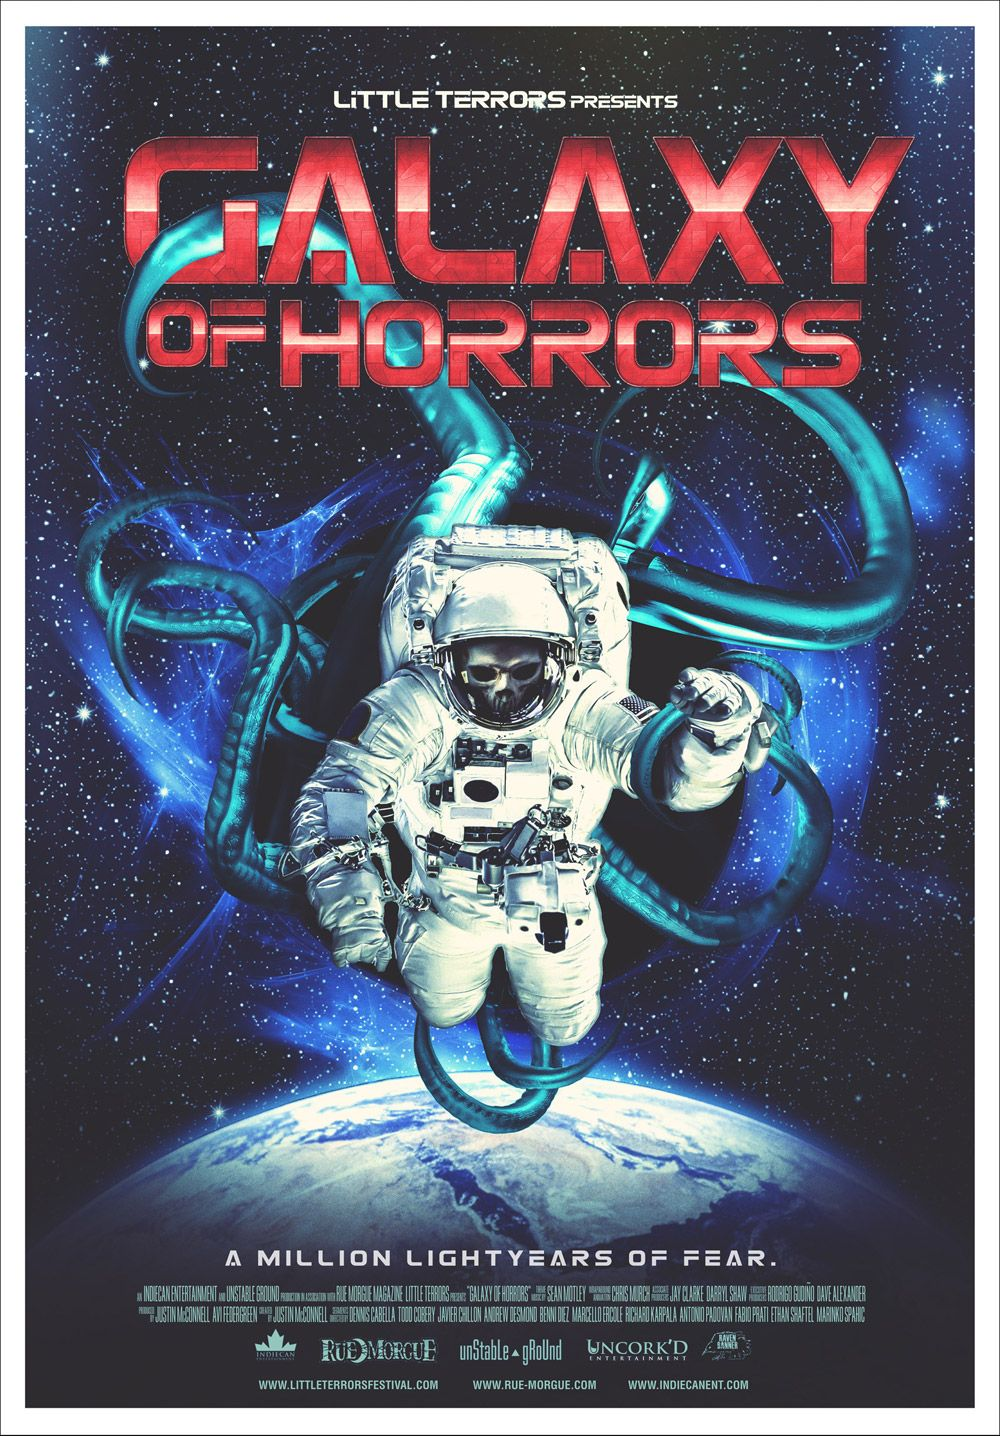 Galaxy of Horrors (2017) | Horror Movie Posters | Pinterest ...